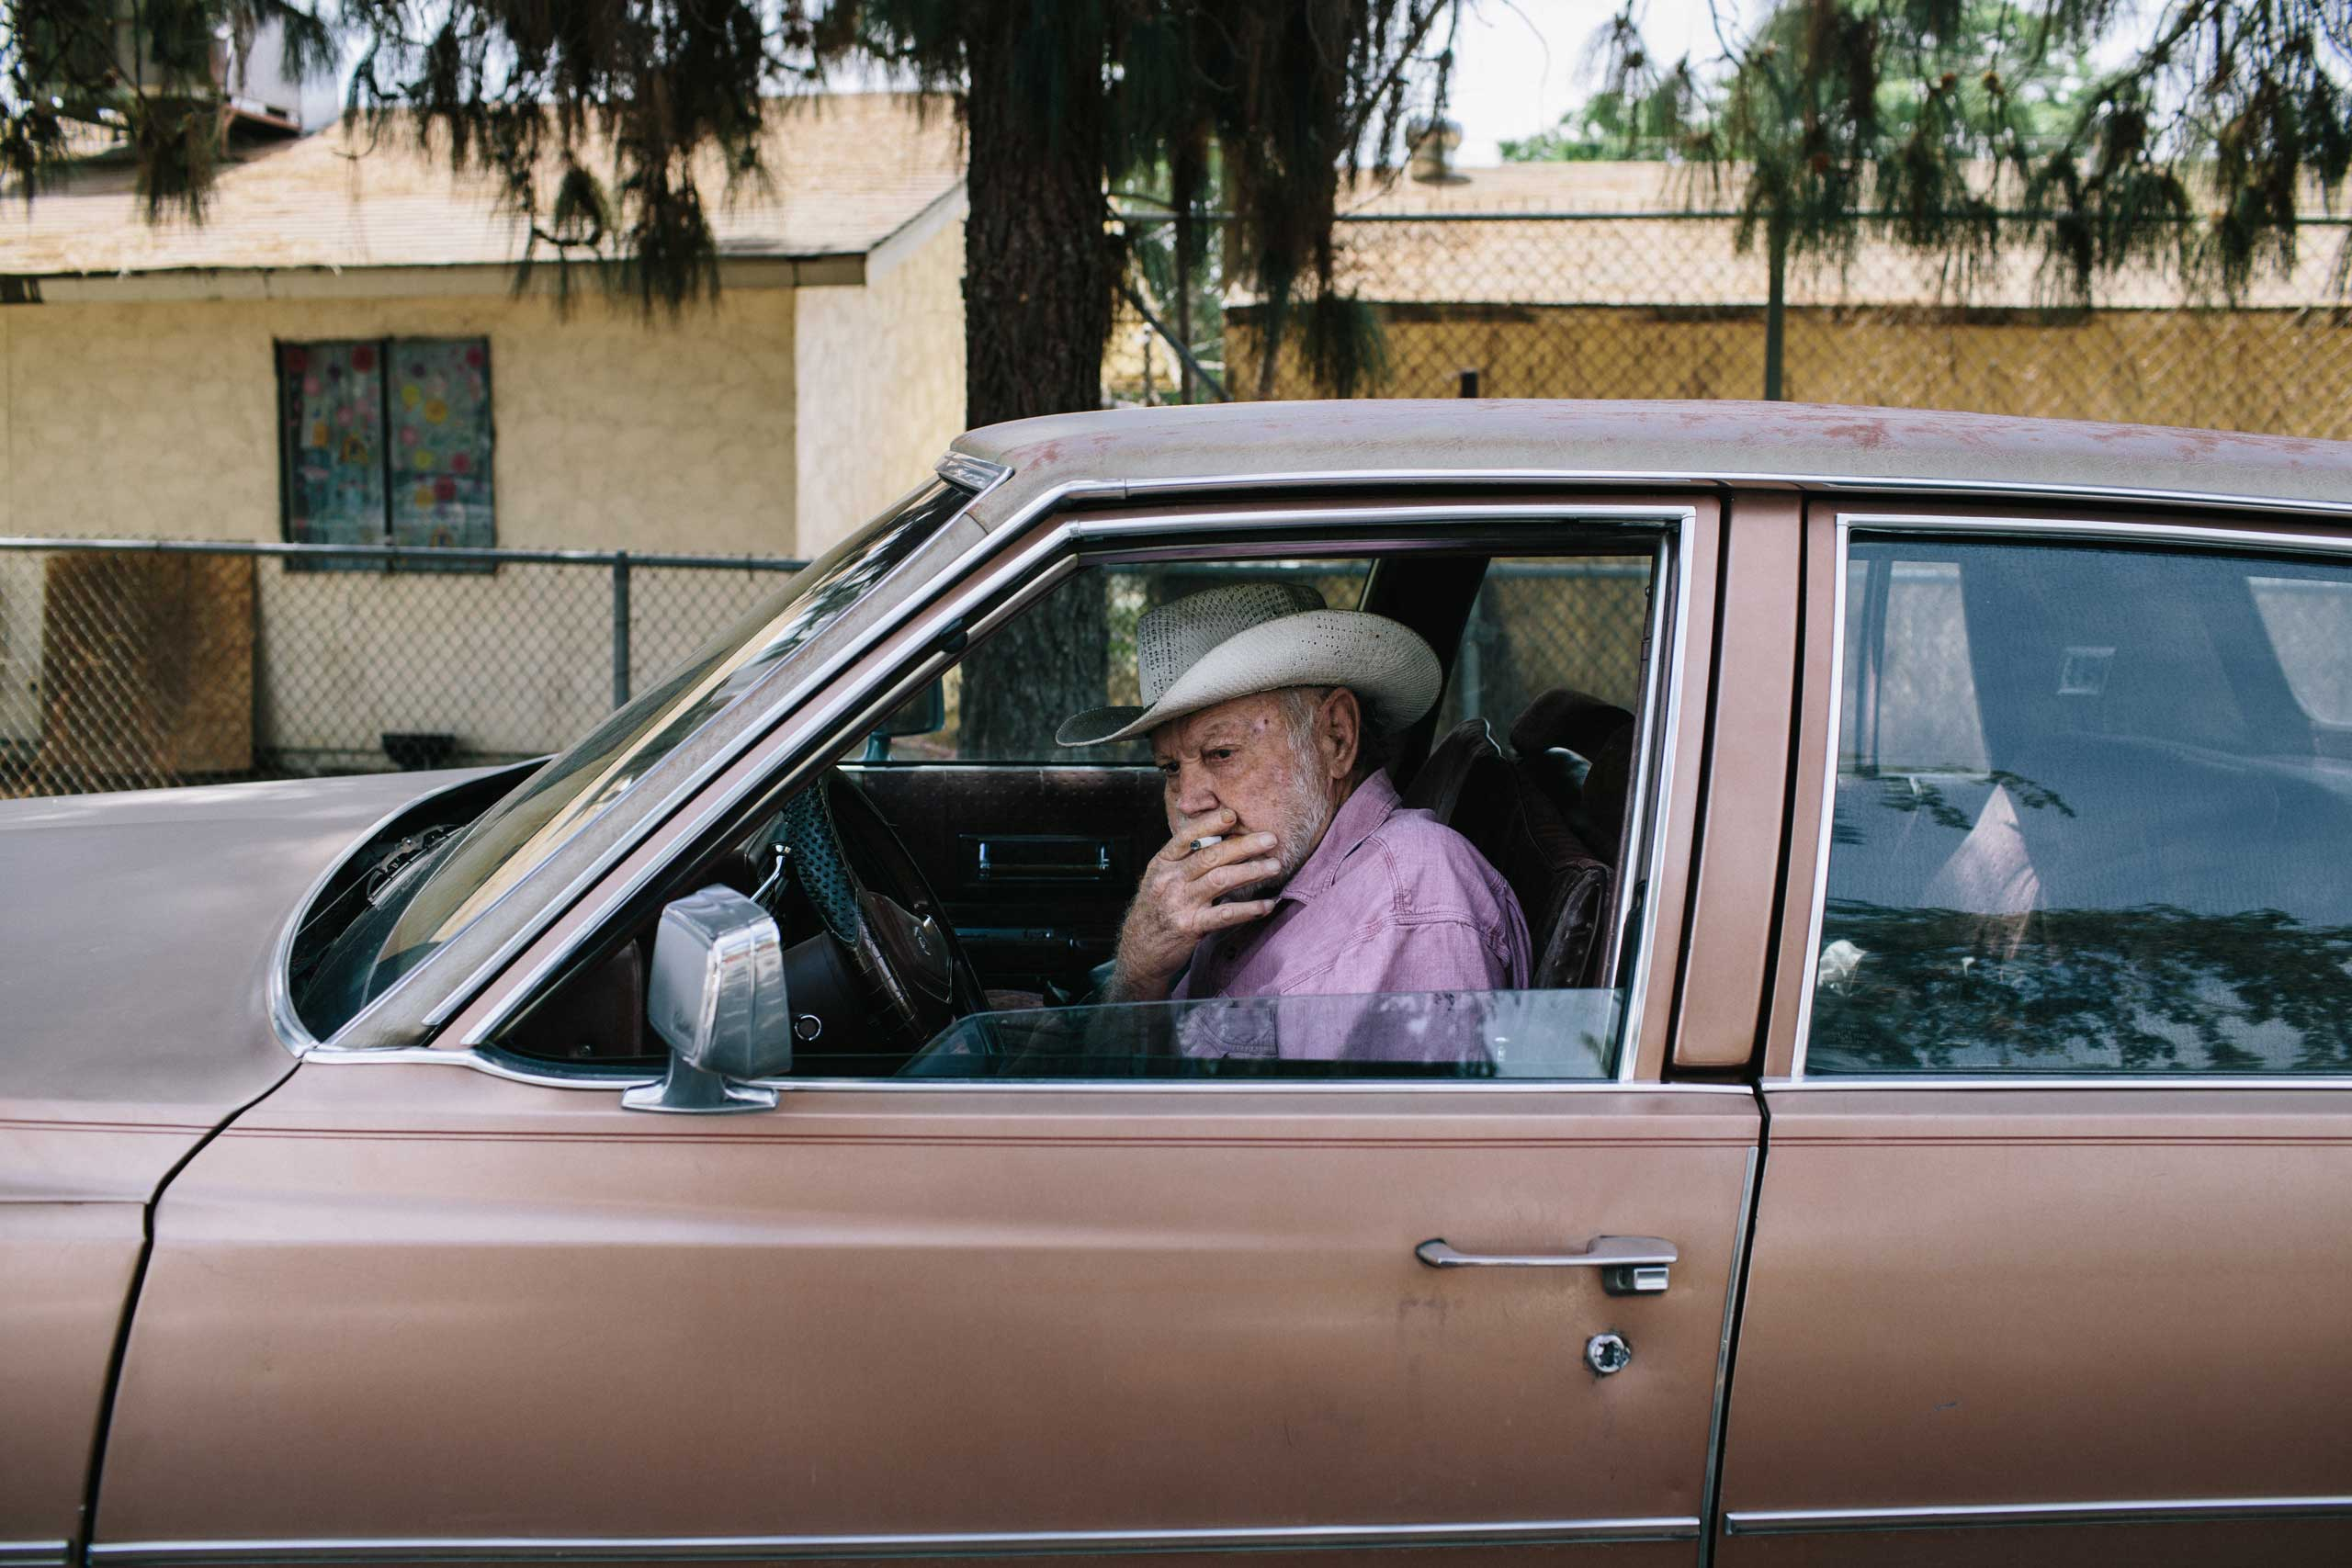 Red Simspon, a country music legend and Bakersfield native, smokes a cigarette outside of the Rasmussen Senior Center in Oildale, north of Bakersfield.